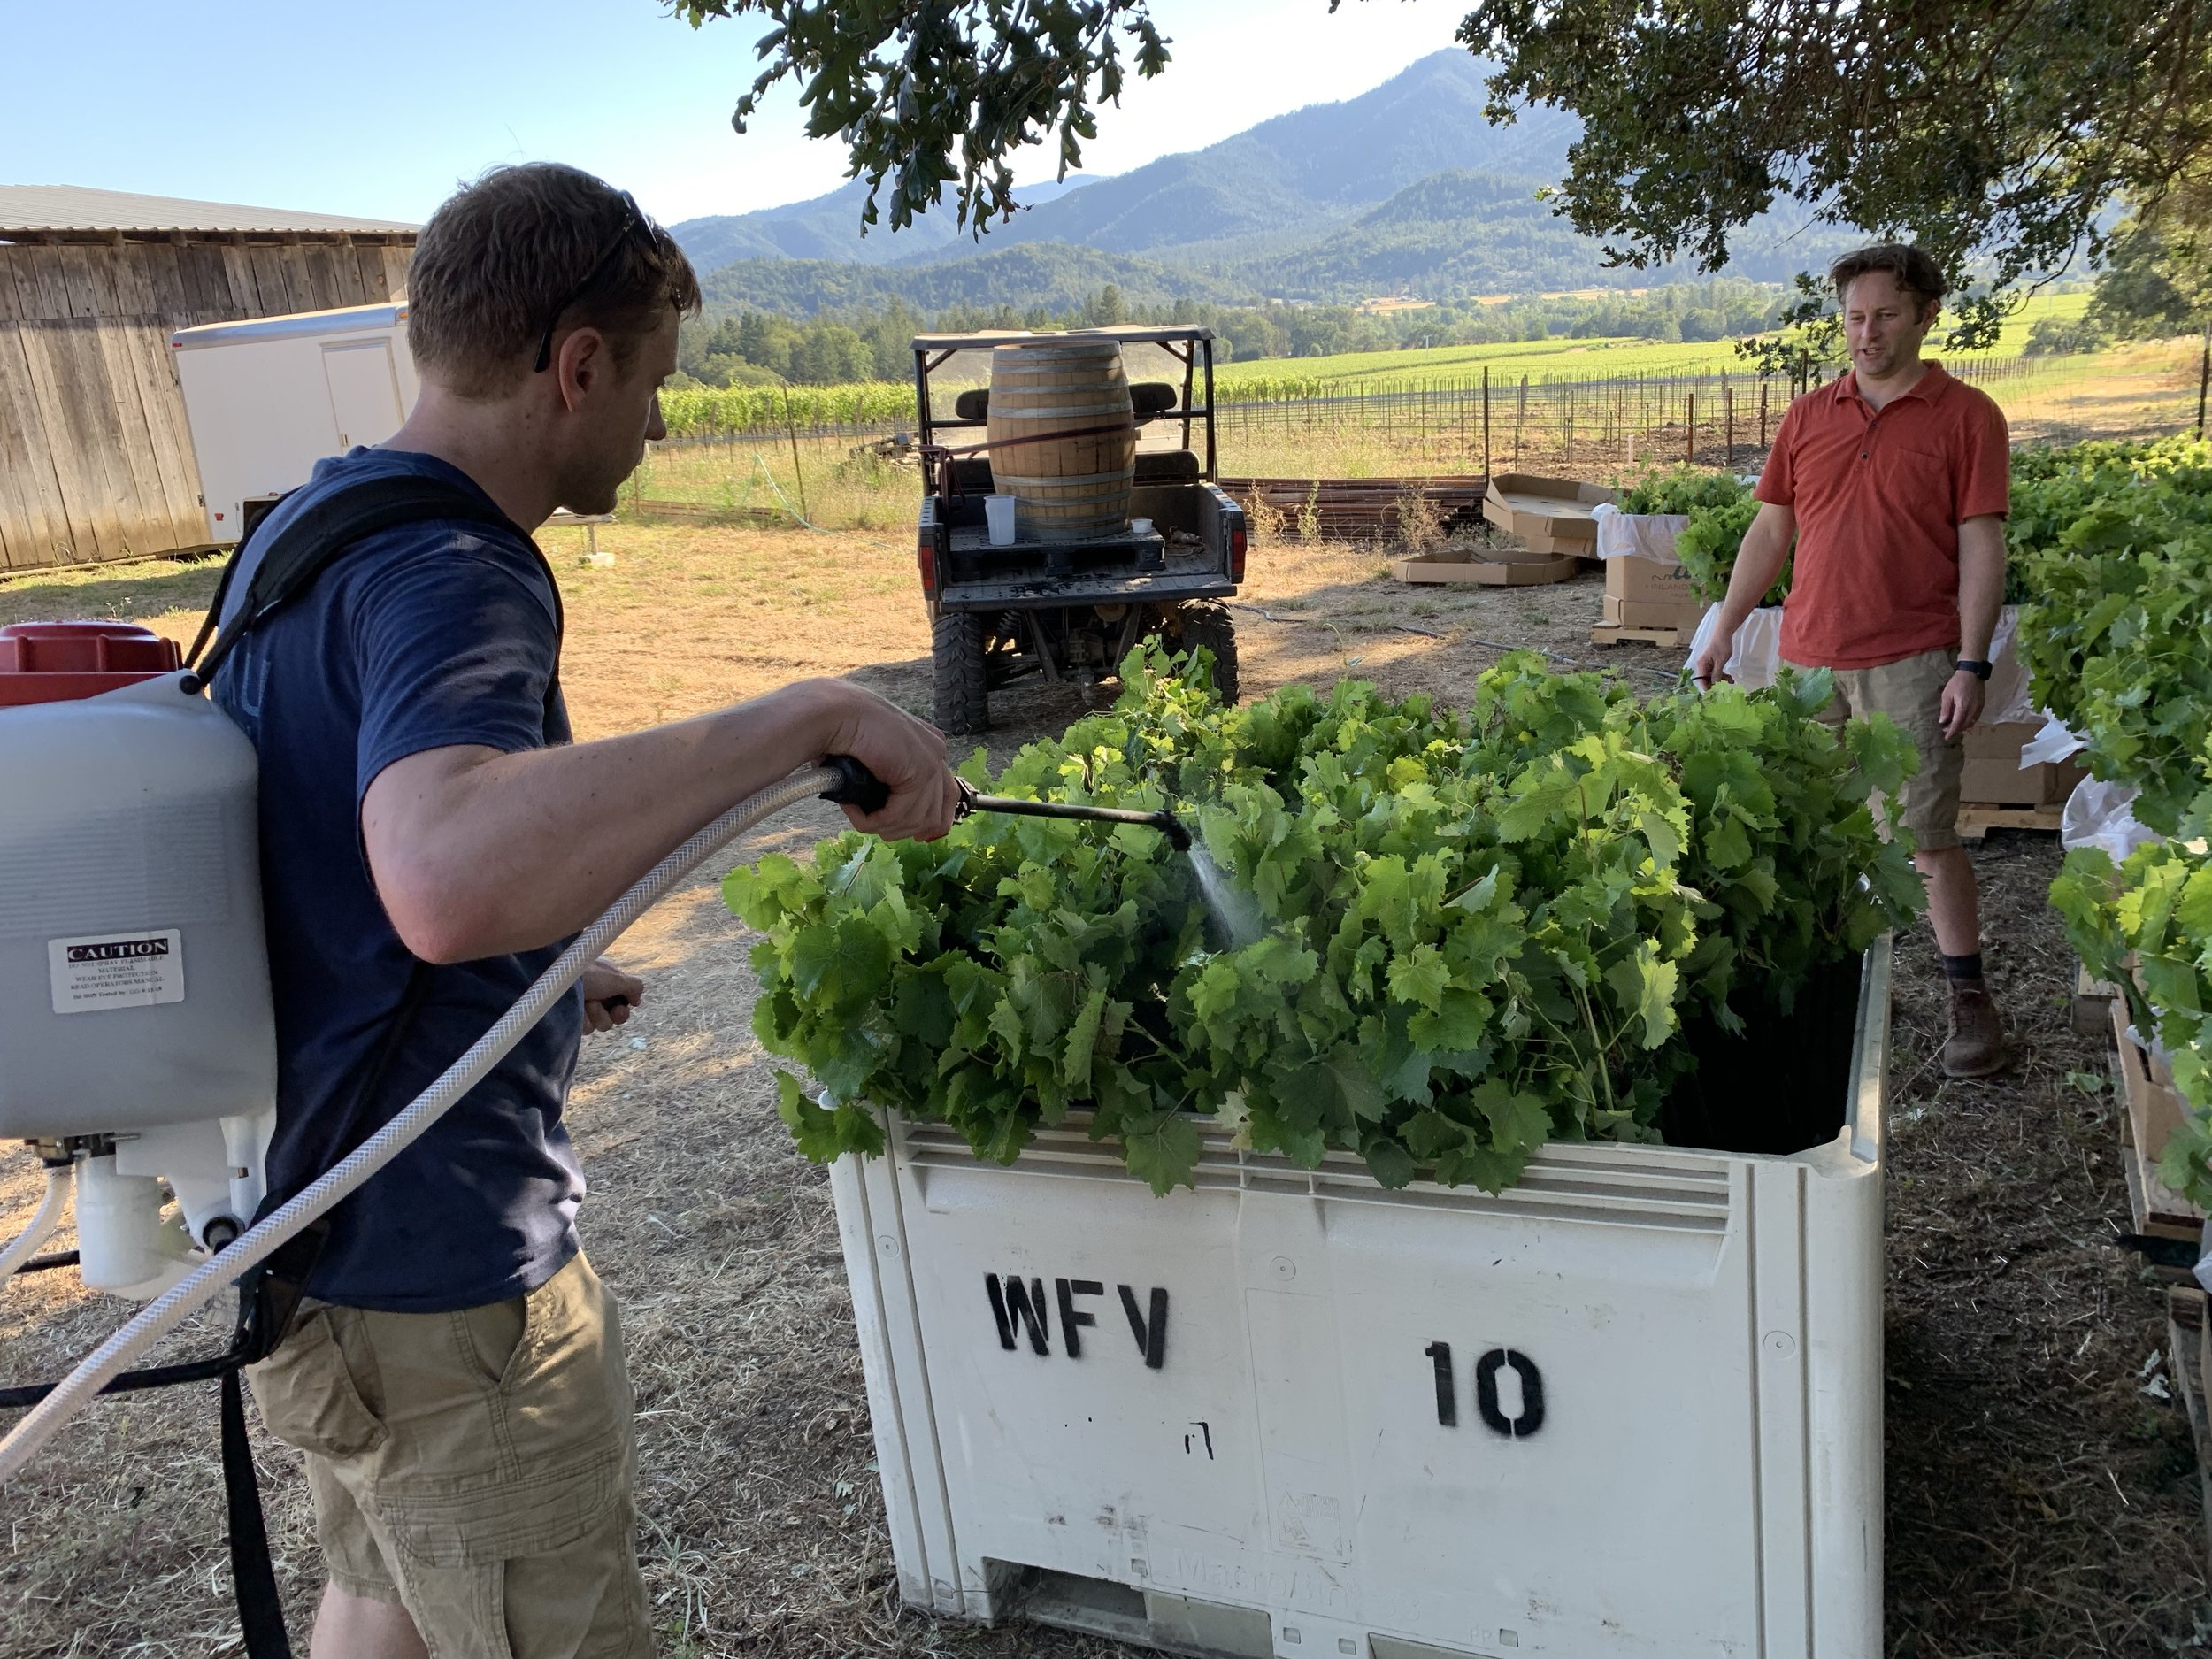 Troon winemakers Cary Willeford and Nate Wall apply BD 508 (horsetail) to new vines about to be planted at Troon Vineyard in Oregon's Applegate Valley .